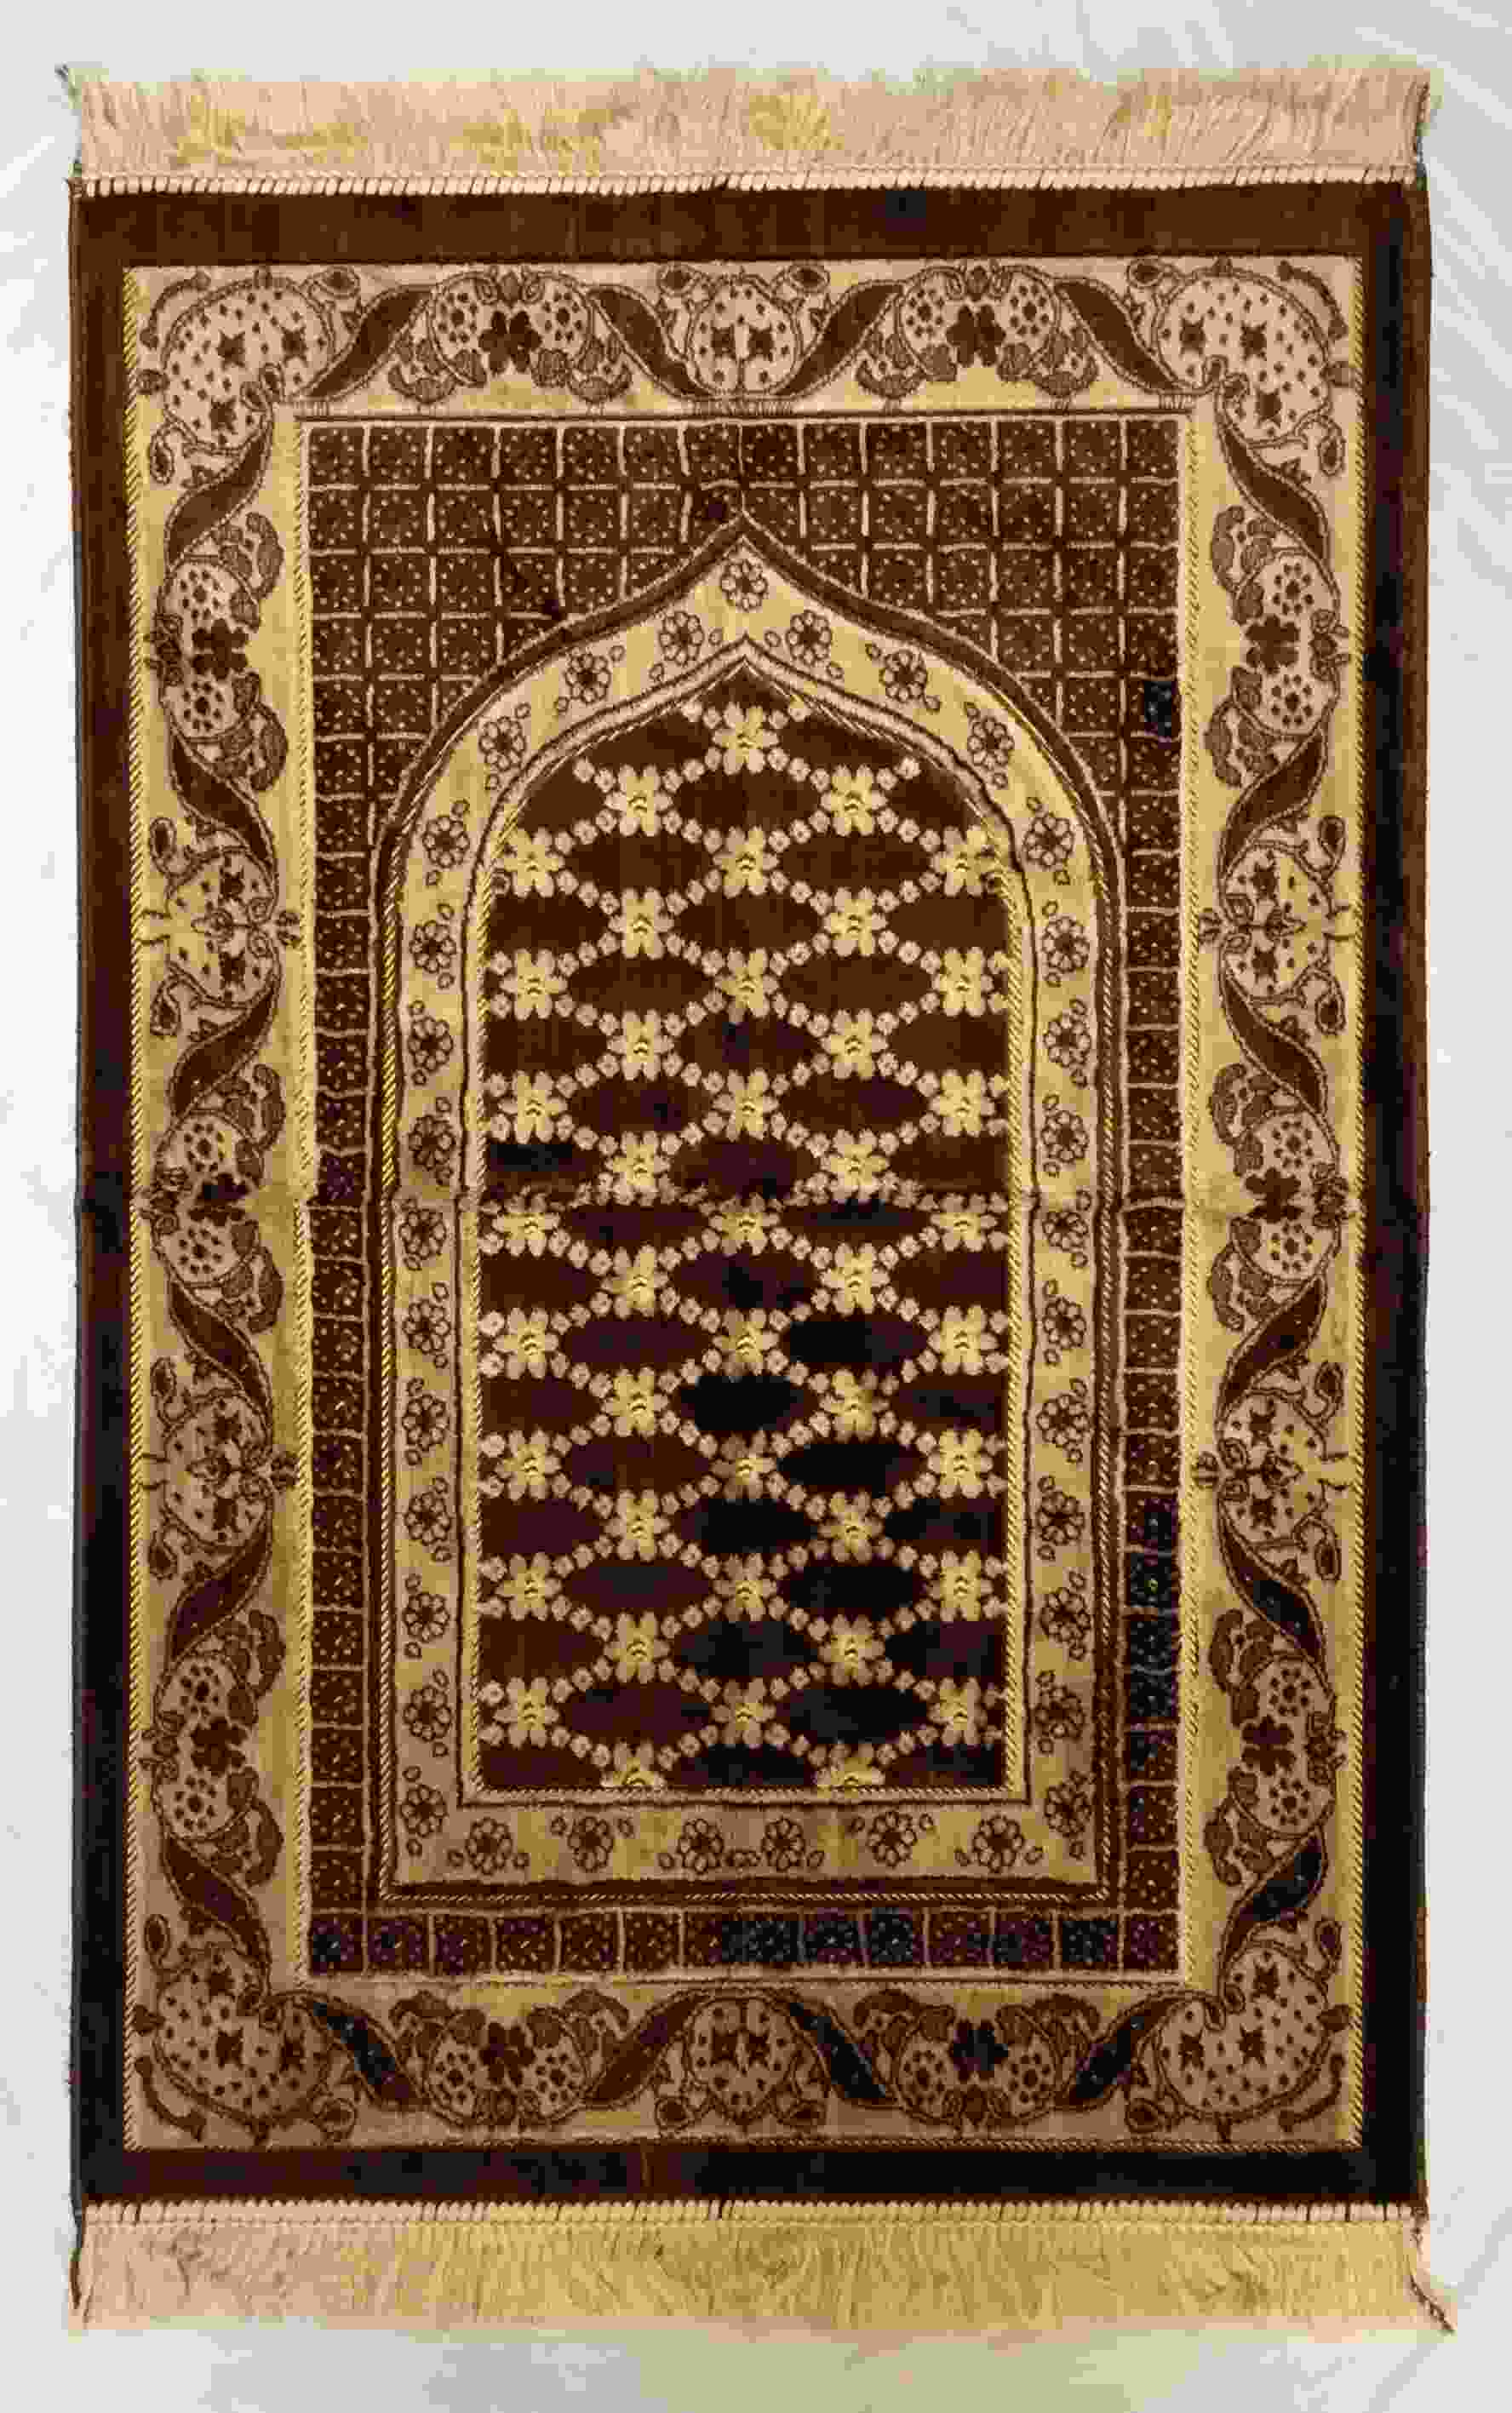 Safi Prayer Rugs - Design SA-D1 Brown - Design Spiegel - Design Plush